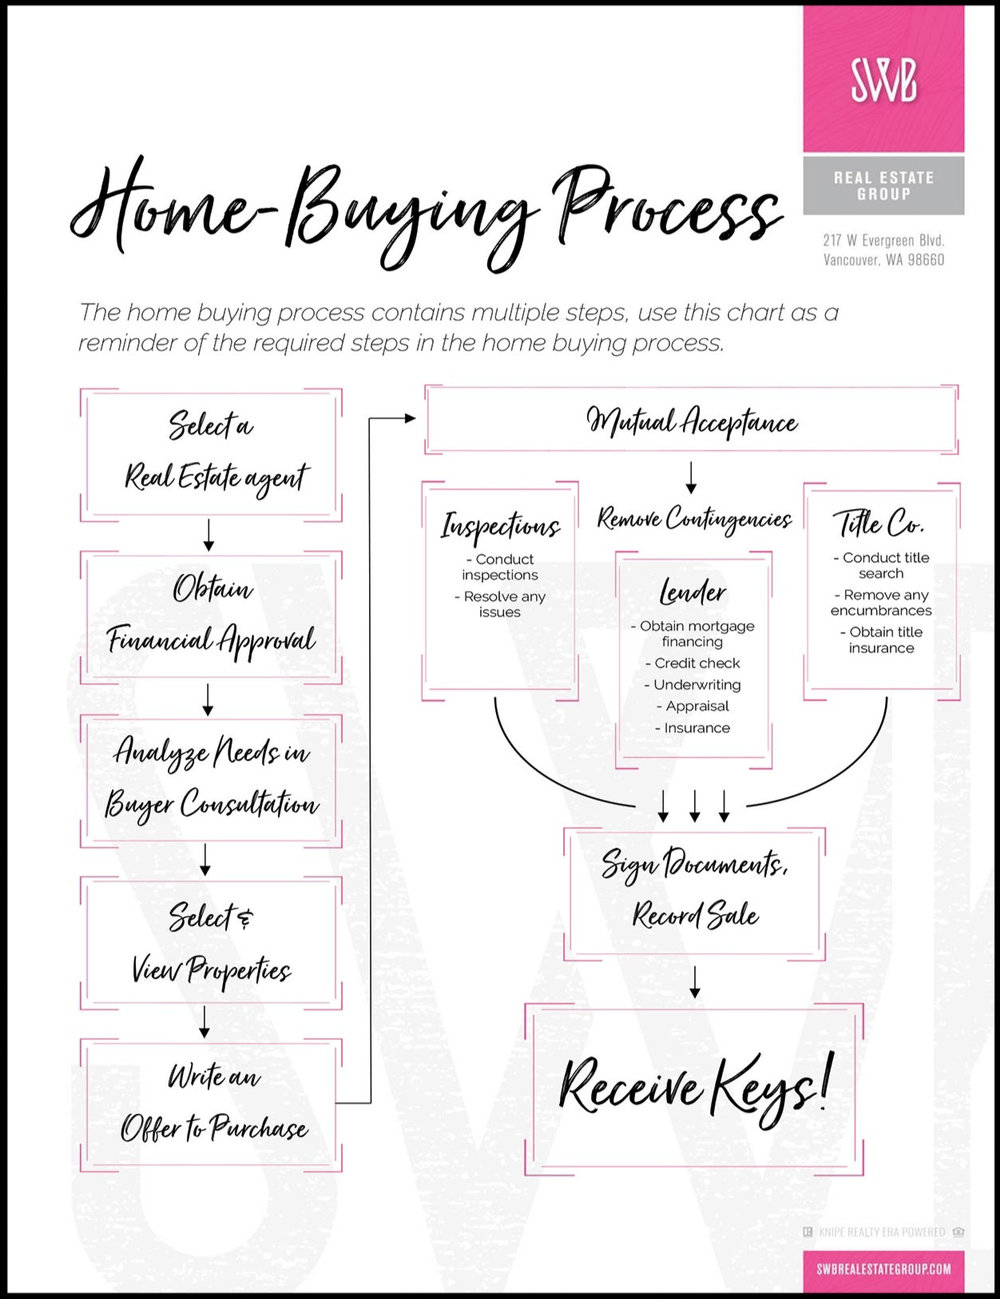 The+home+buying+process.jpg